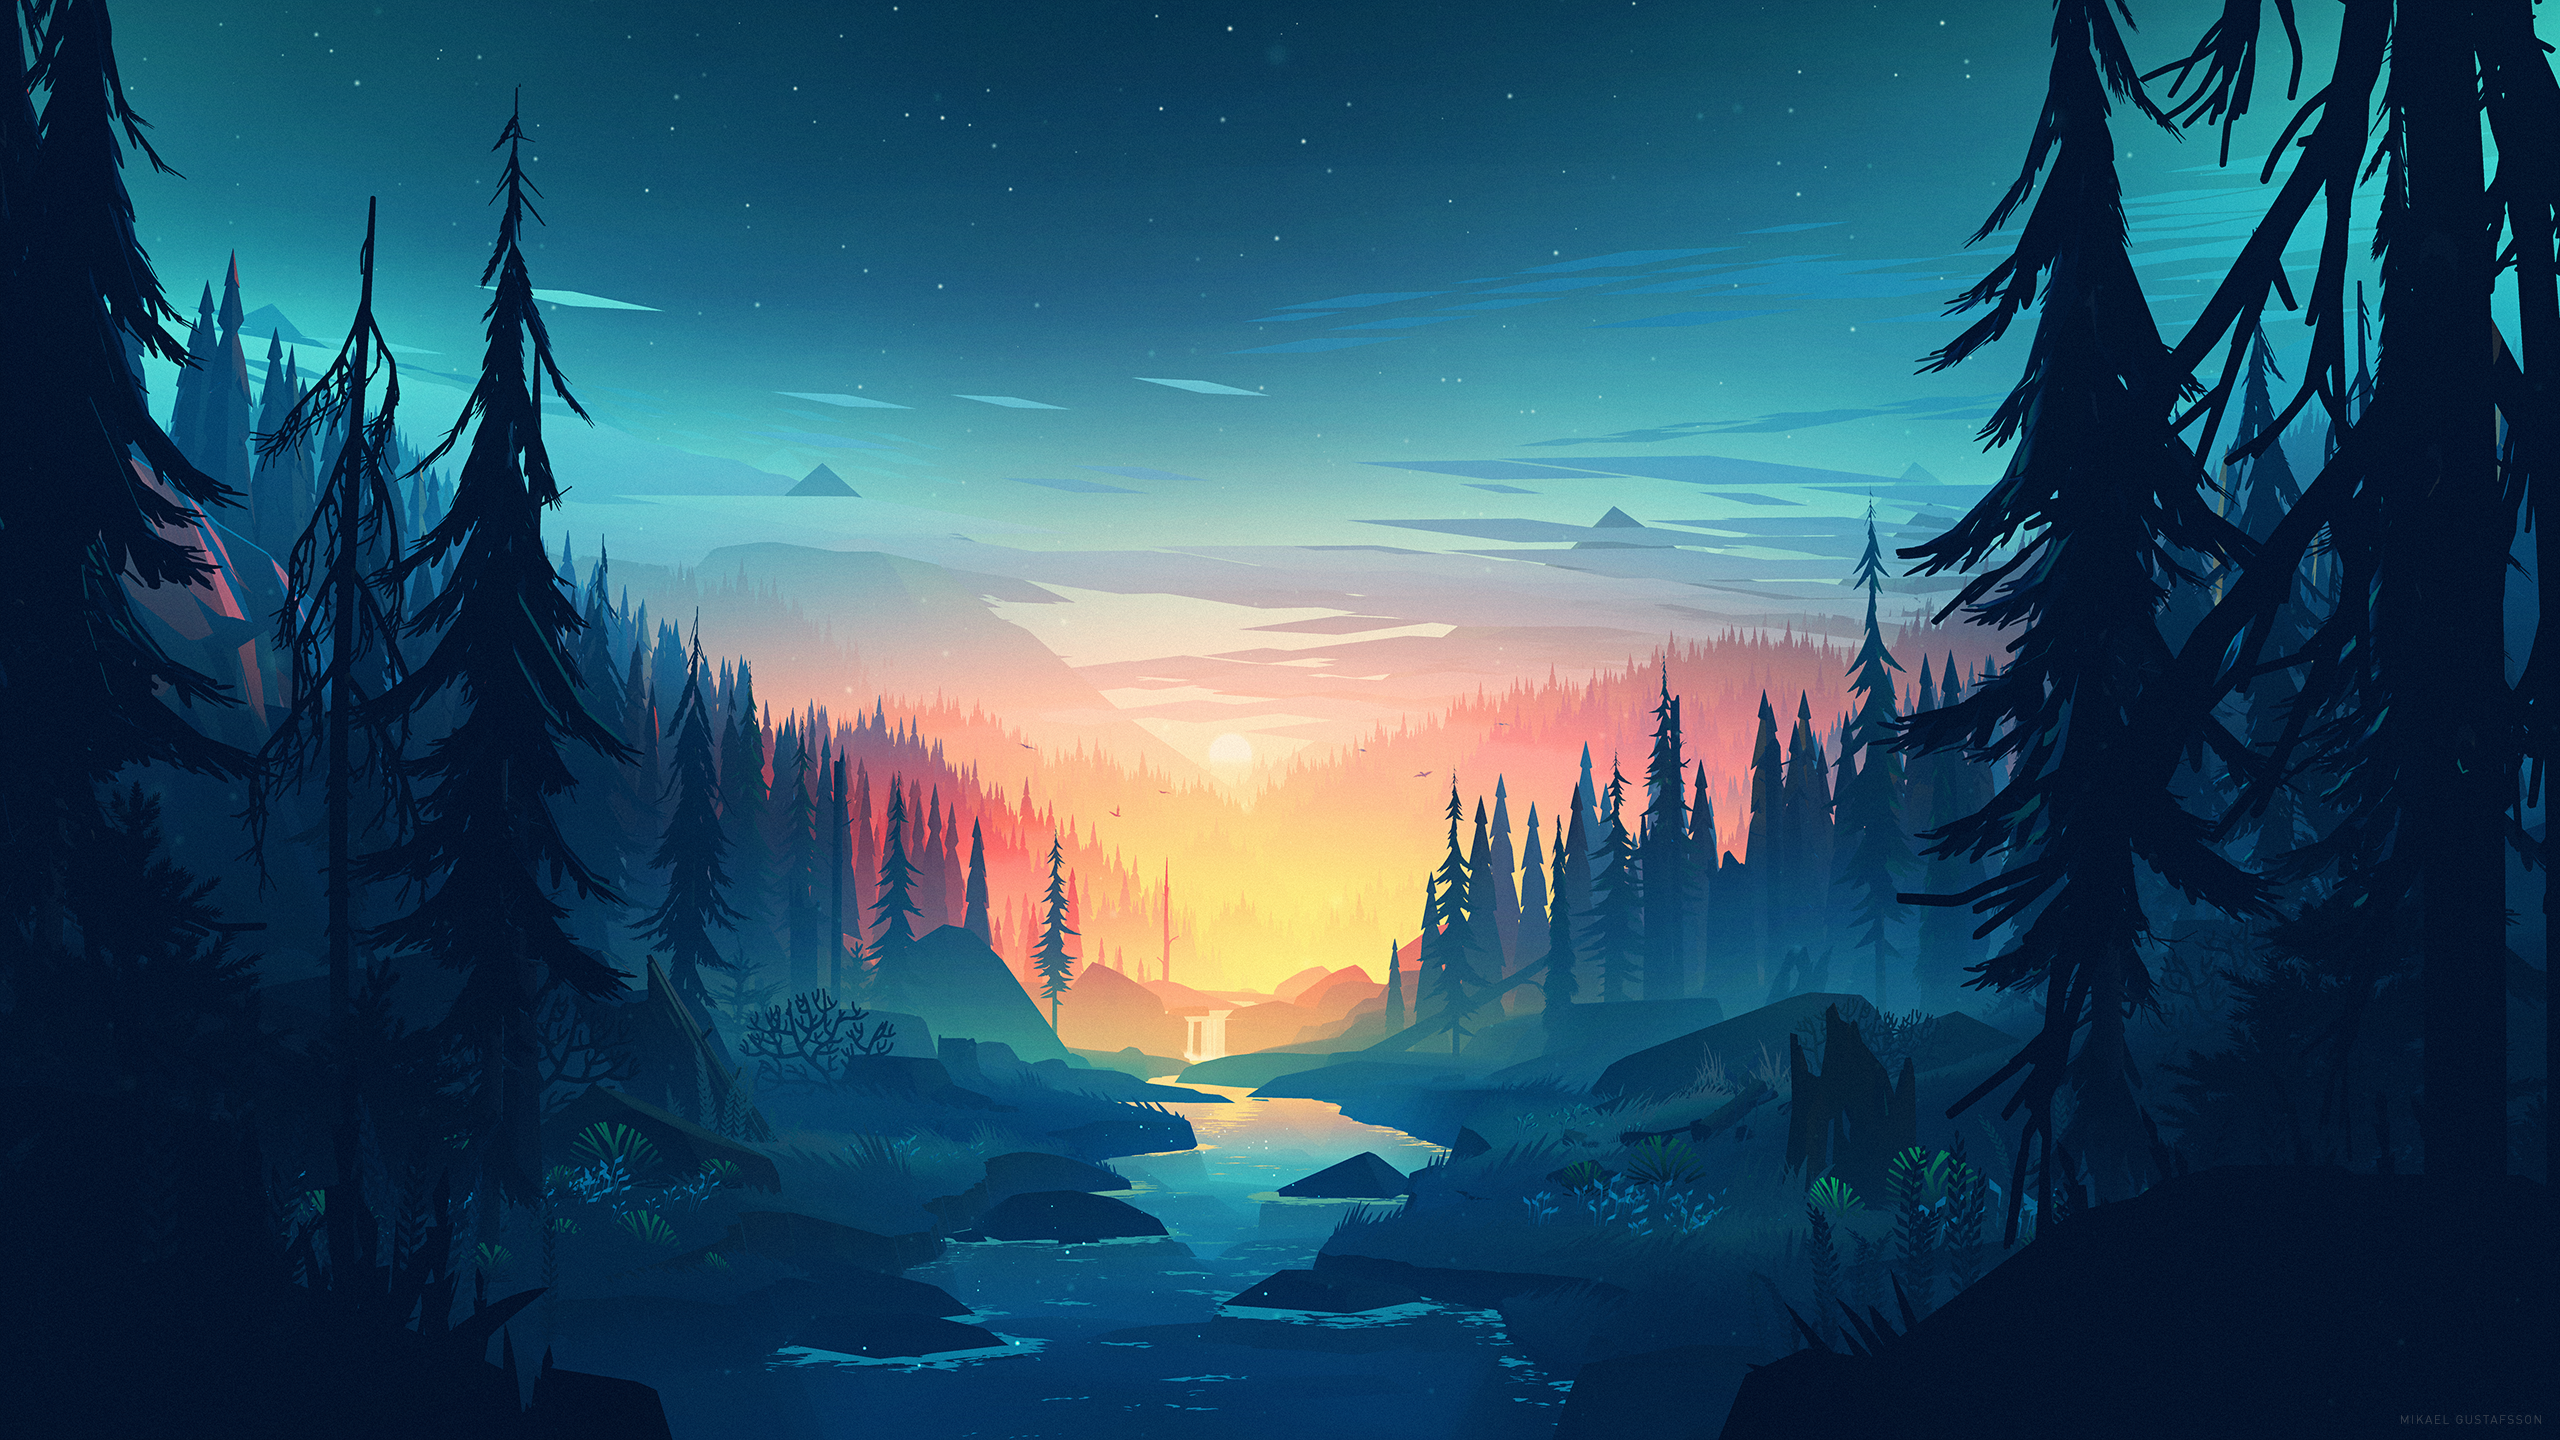 Image Result For Firewatch Wallpaper Scenery Wallpaper Landscape Wallpaper Desktop Wallpaper Art